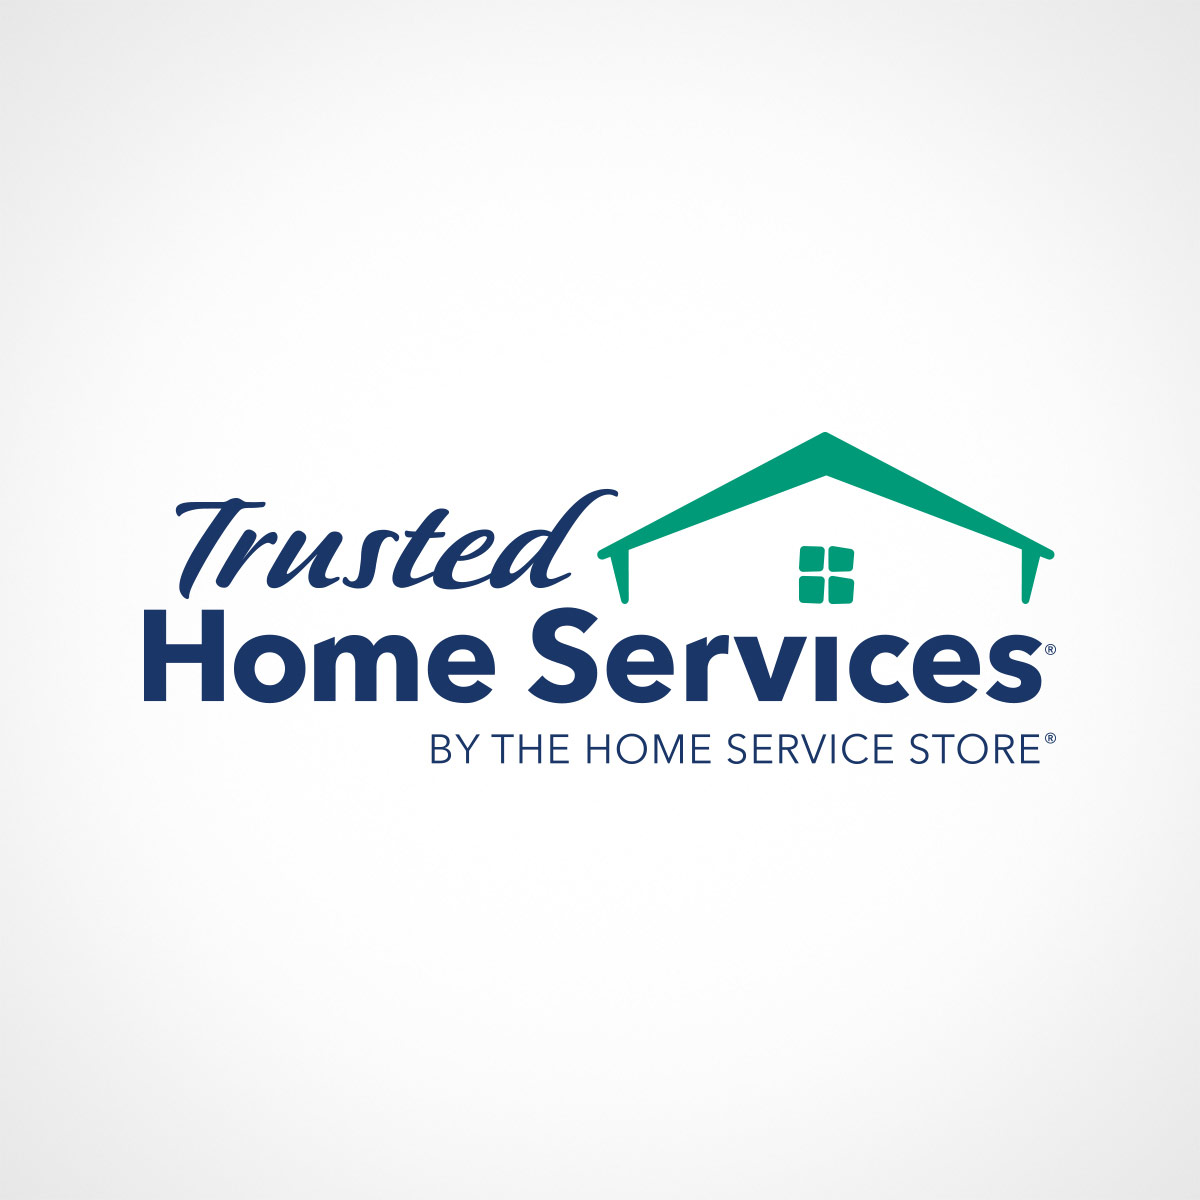 christina-ryan-trusted-home-services-logo-design